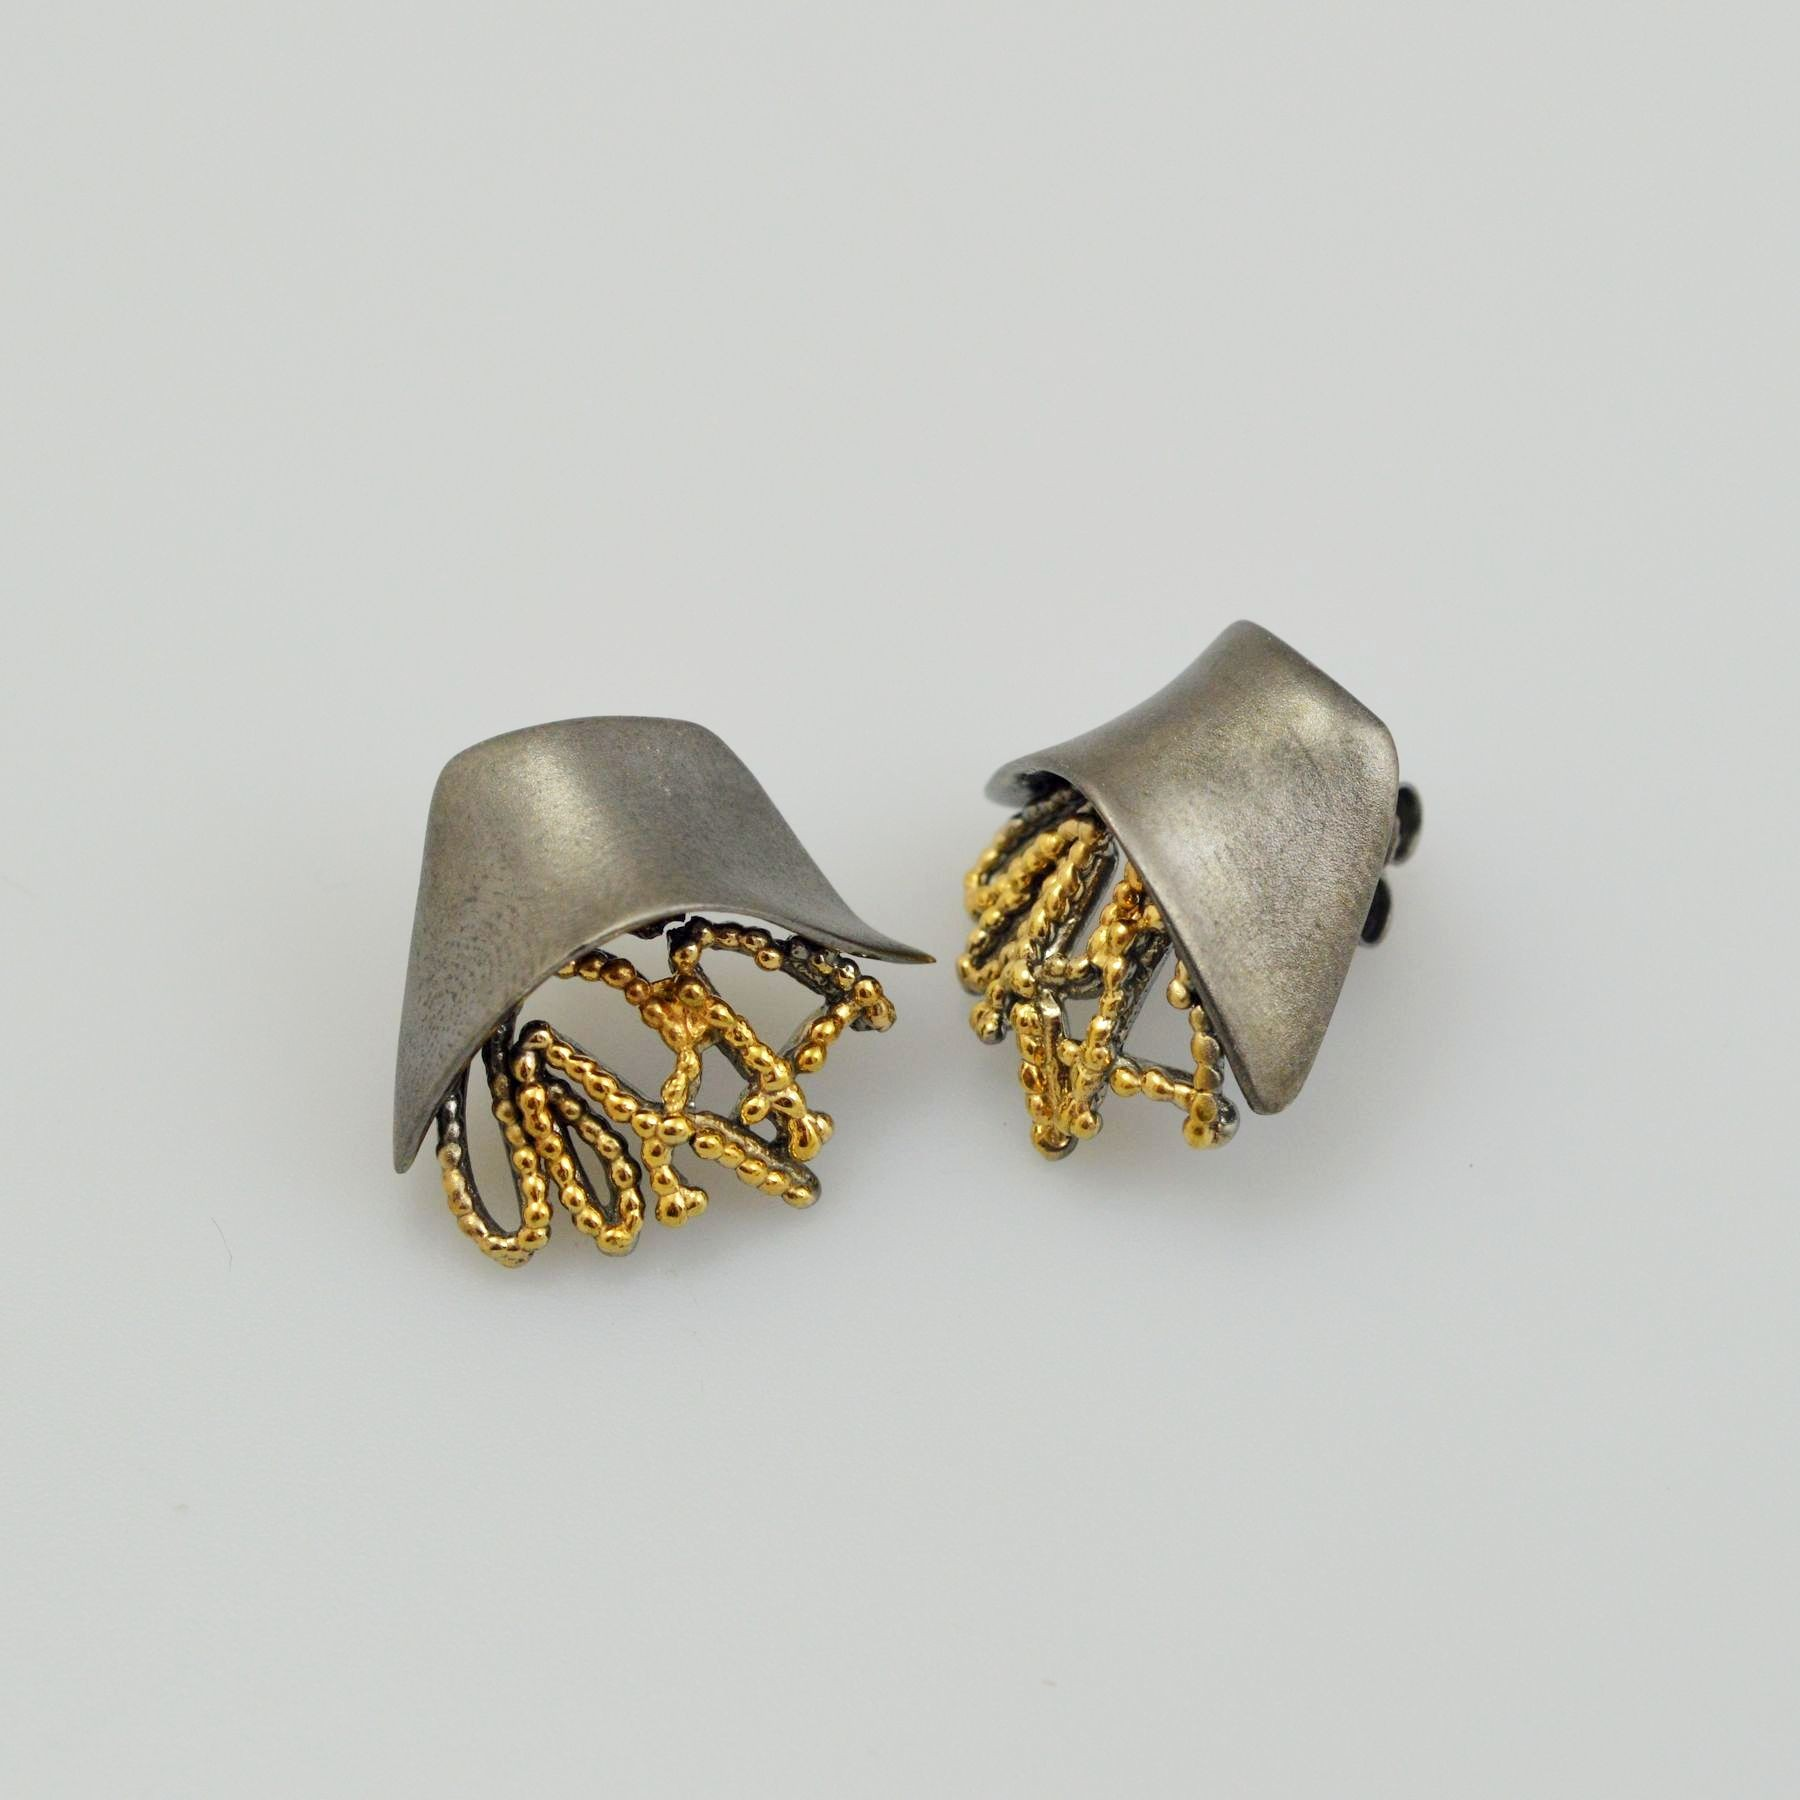 Silver earrings 925 rhodium and gold plated